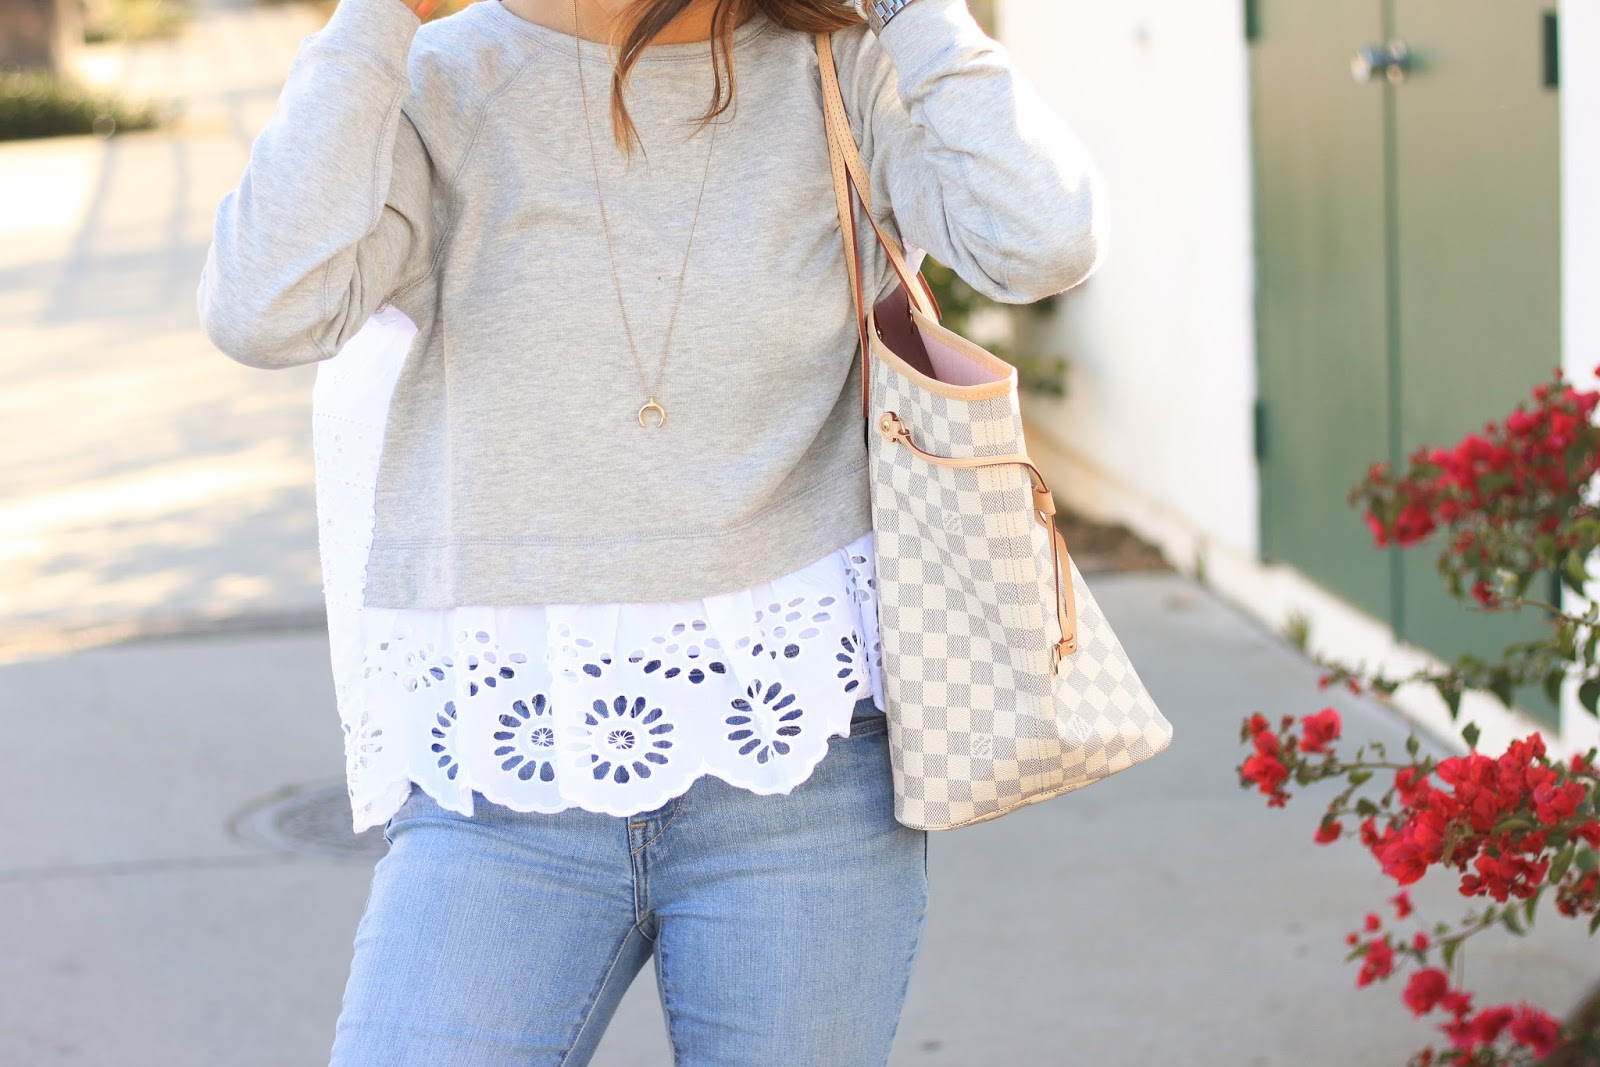 How to dress up a simple sweatshirt for spring and summer